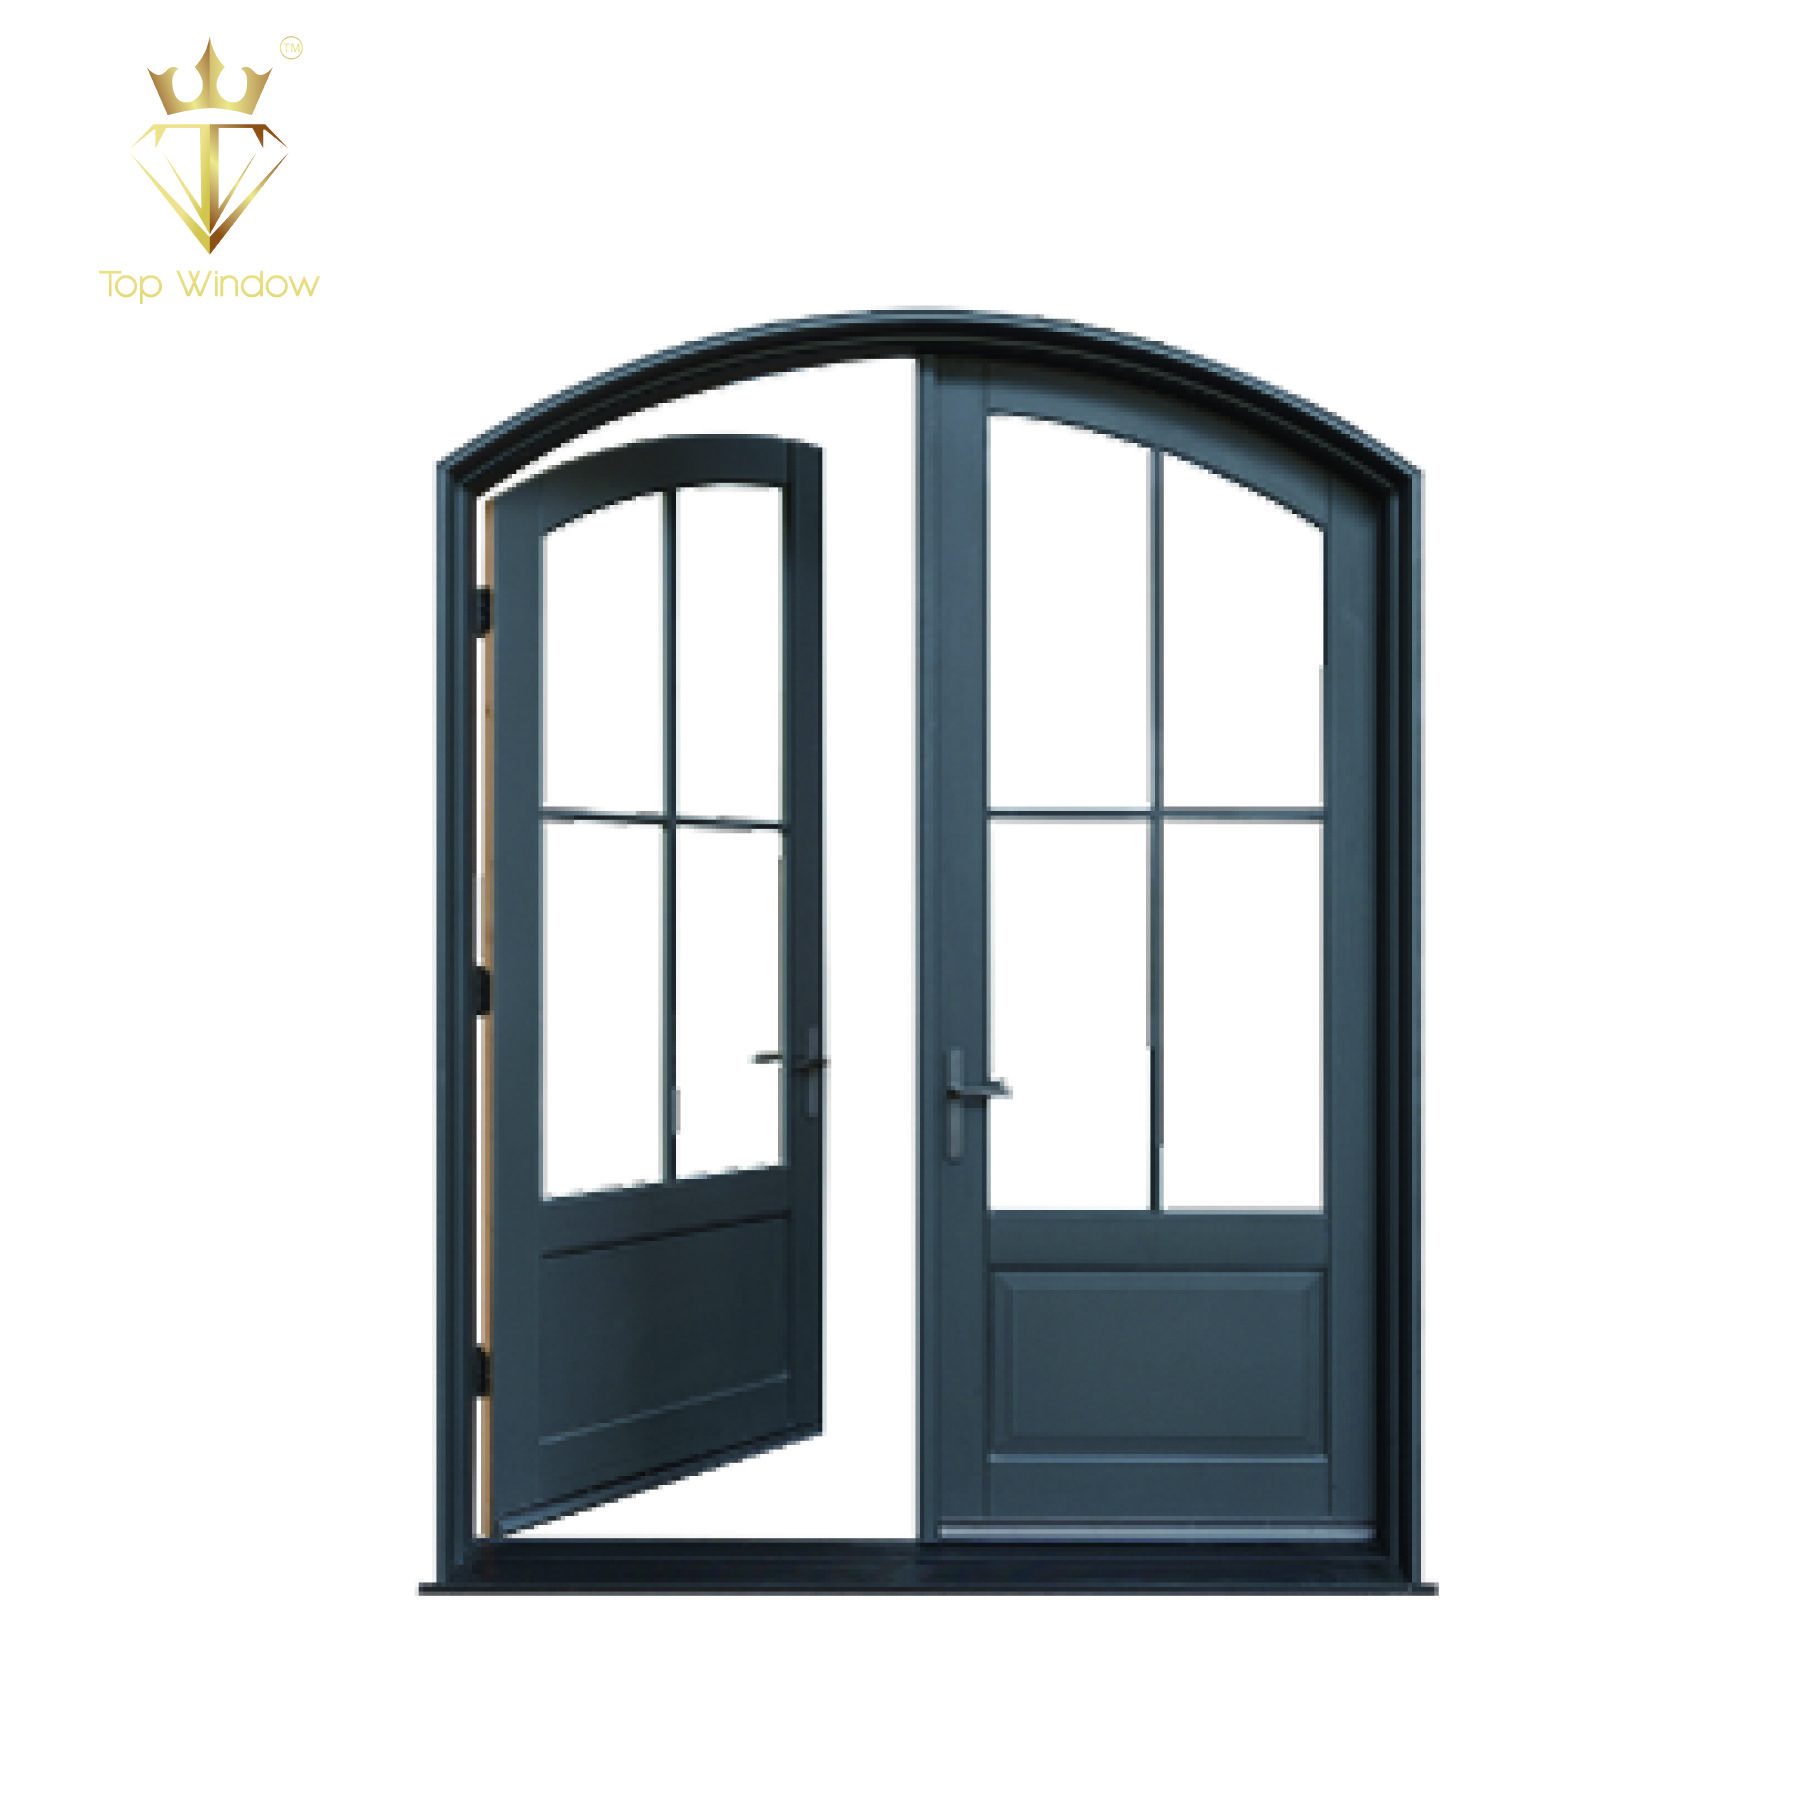 2019 Fashion Arch Aluminum Big Glass Grilled Designment French Entry Door Aluminum French Doors Pocket Door Frame Buy French Doors Pocket Door Frame French Do In 2020 French Entry Doors French